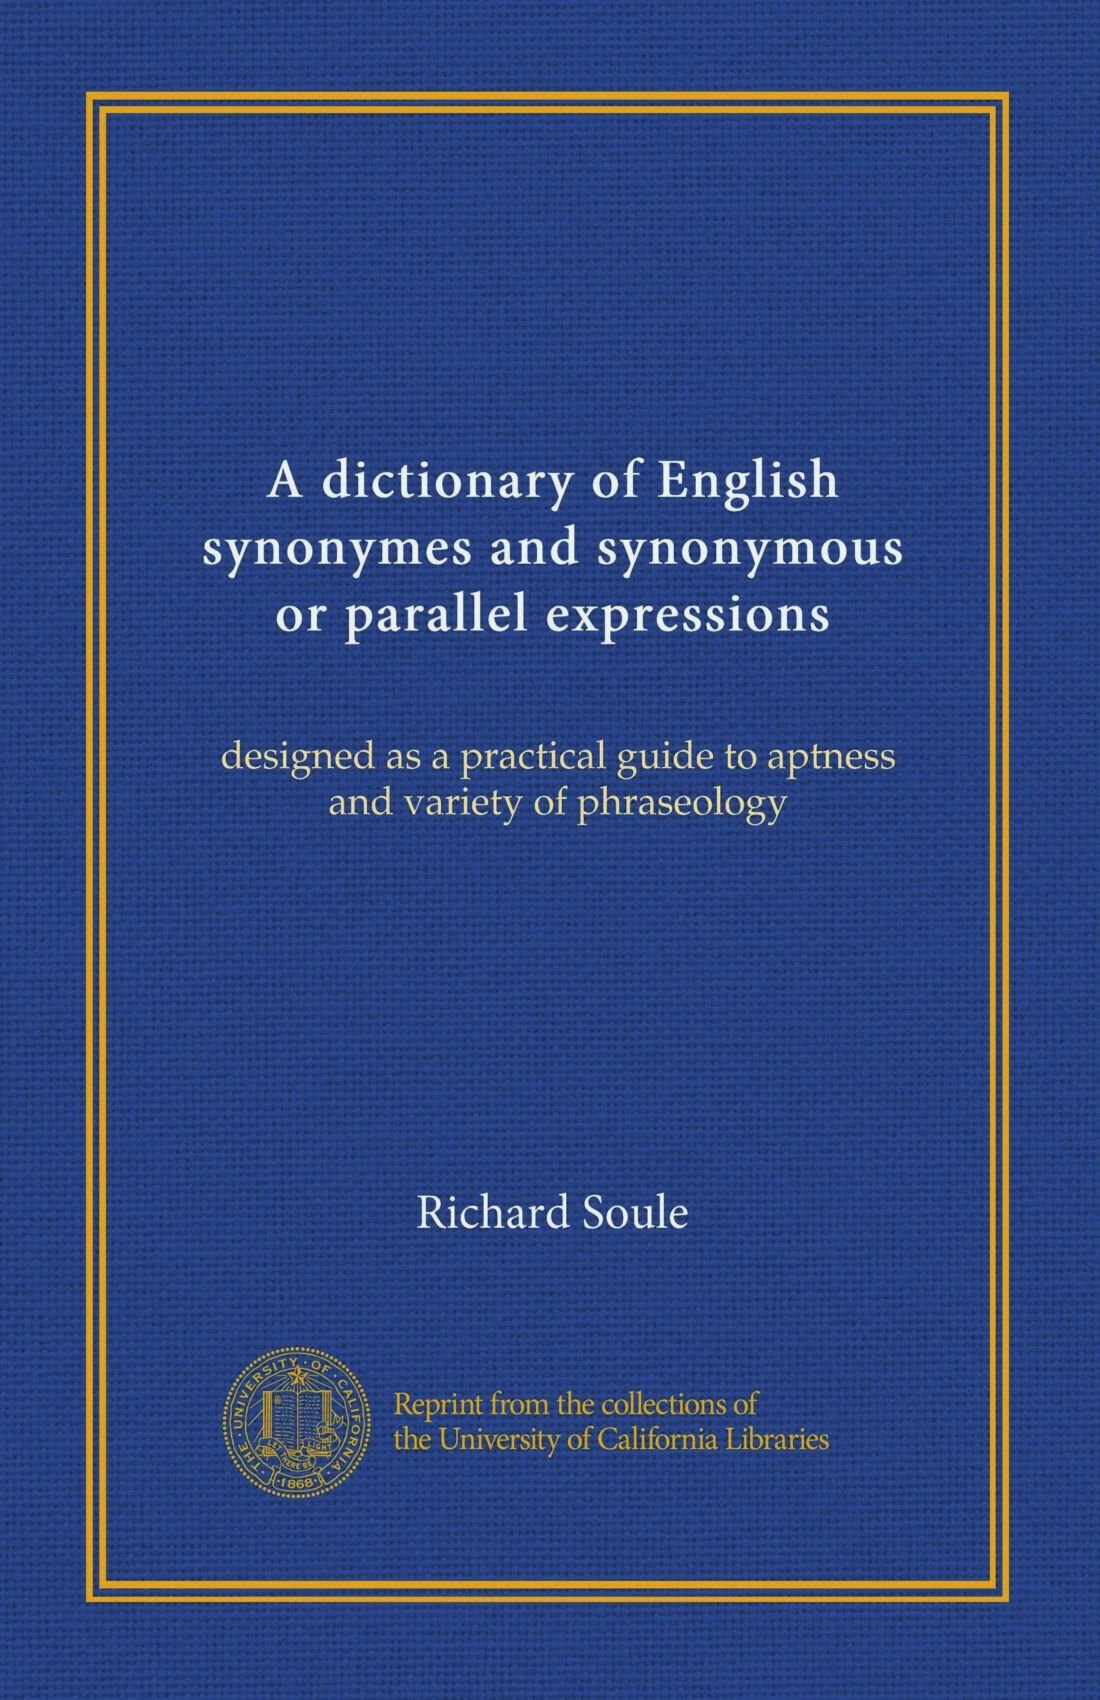 A dictionary of English synonymes and synonymous or parallel expressions: designed as a practical guide to aptness and variety of phraseology ebook